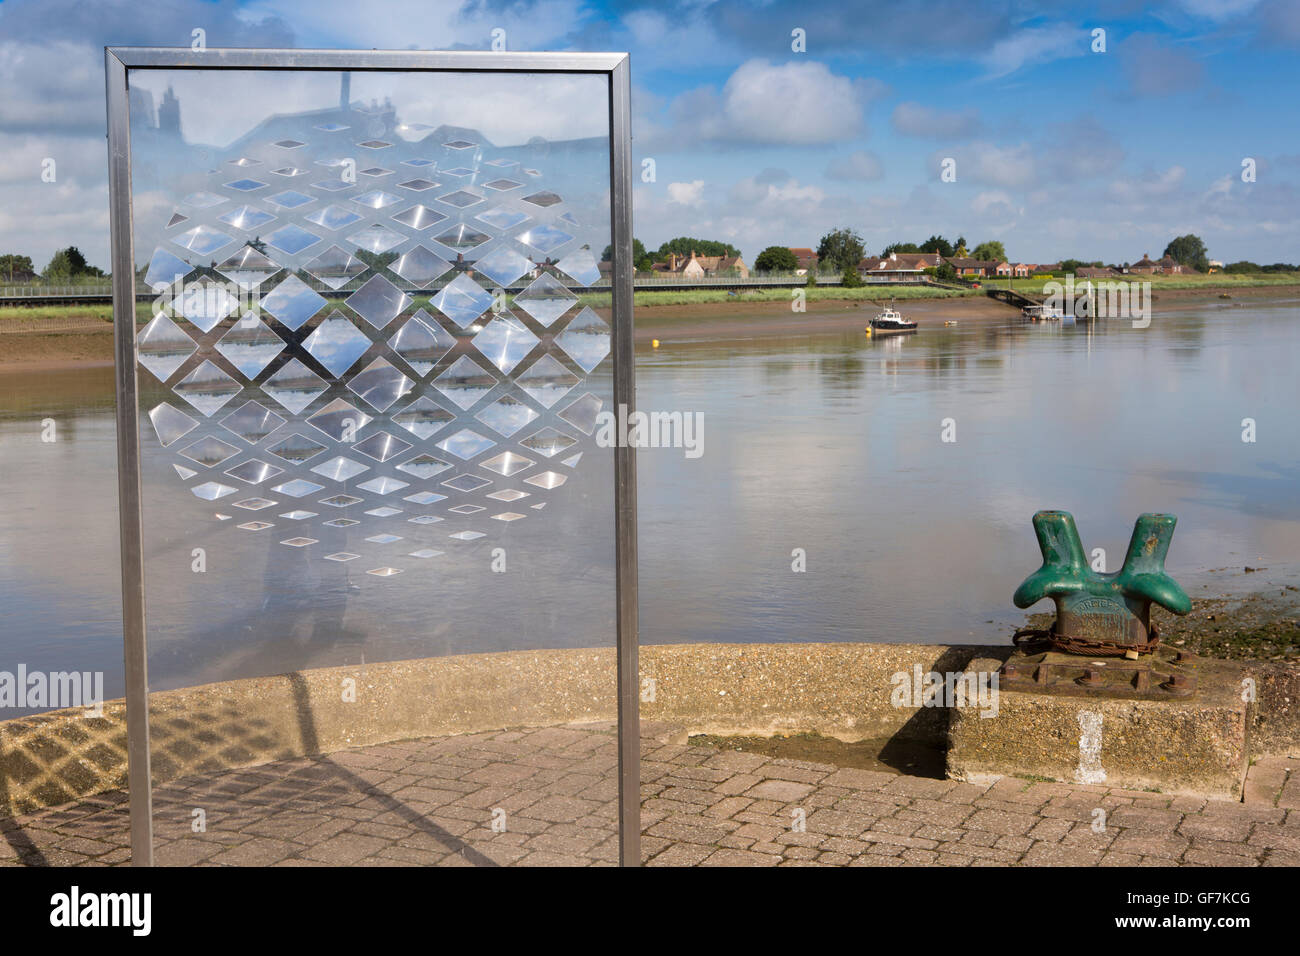 UK, England, Norfolk, King's Lynn, South Quay, transparent sculpture on banks of River Great Ouse - Stock Image